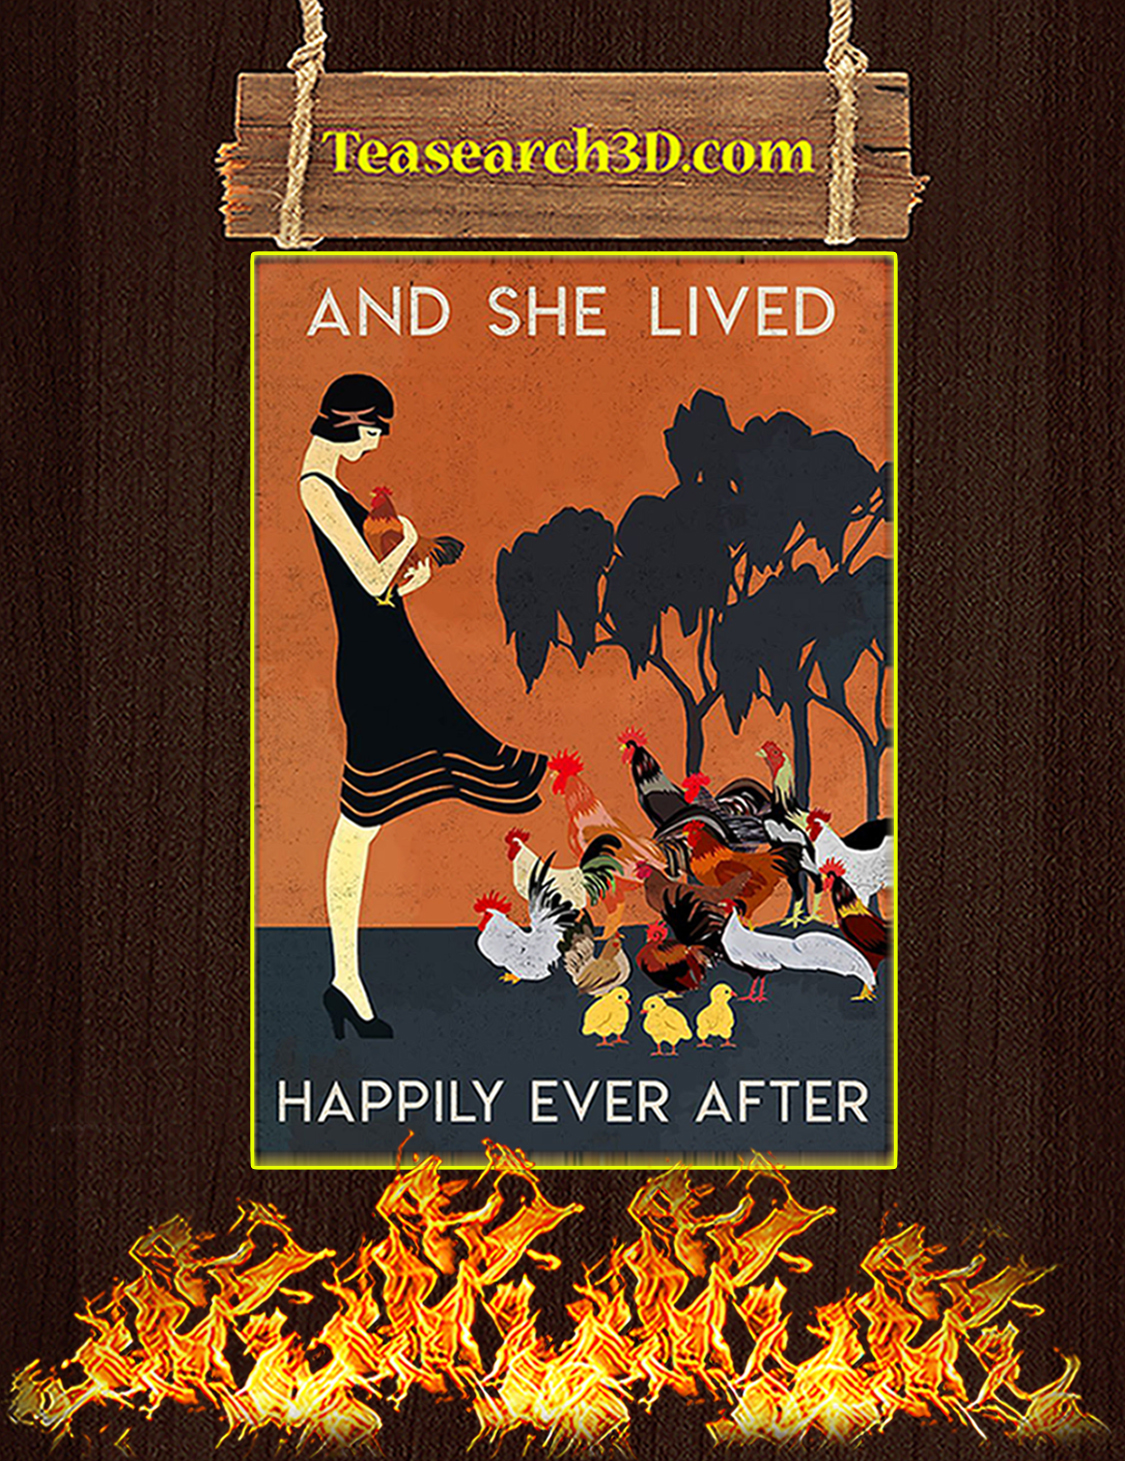 Chicken And she lived happily ever after poster A3